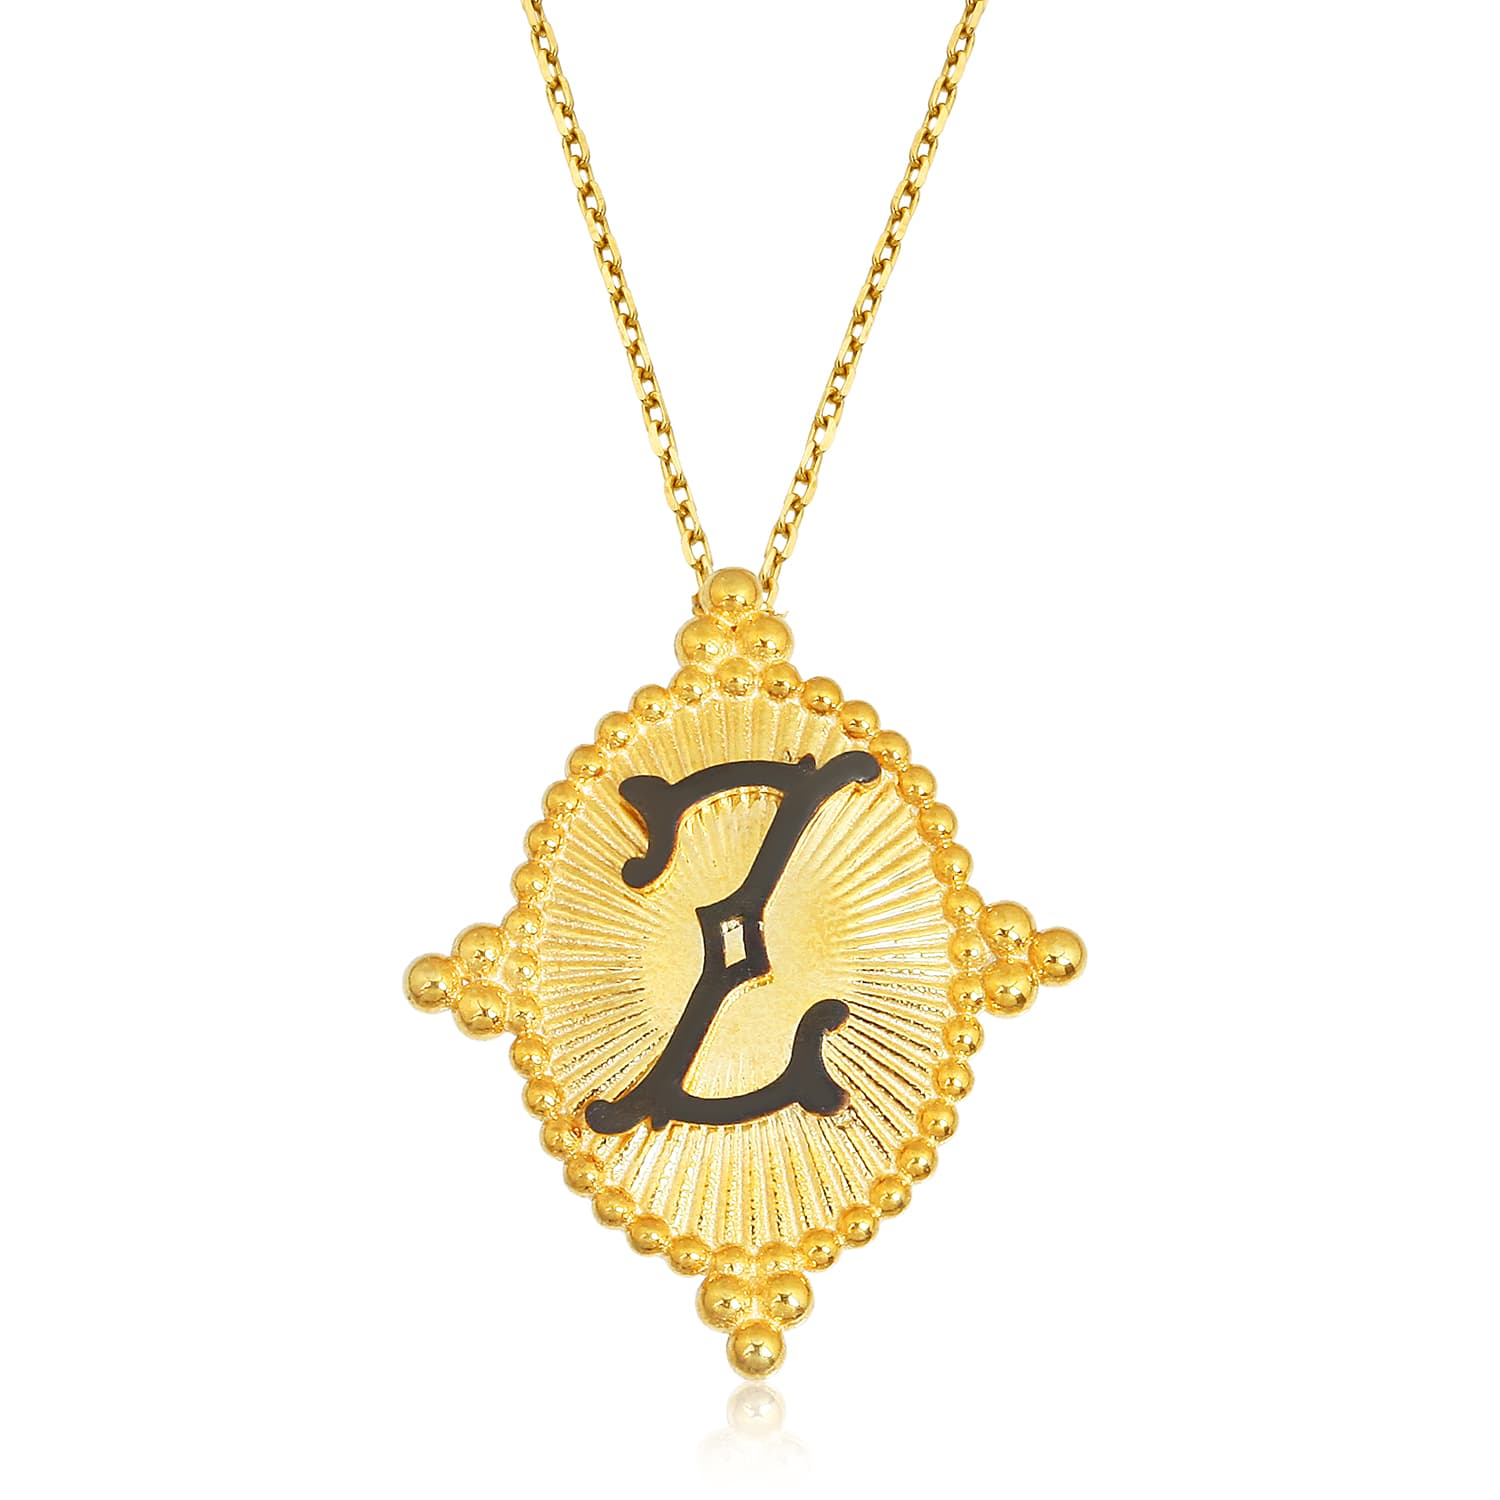 VINTAGE LETTER NECKLACE